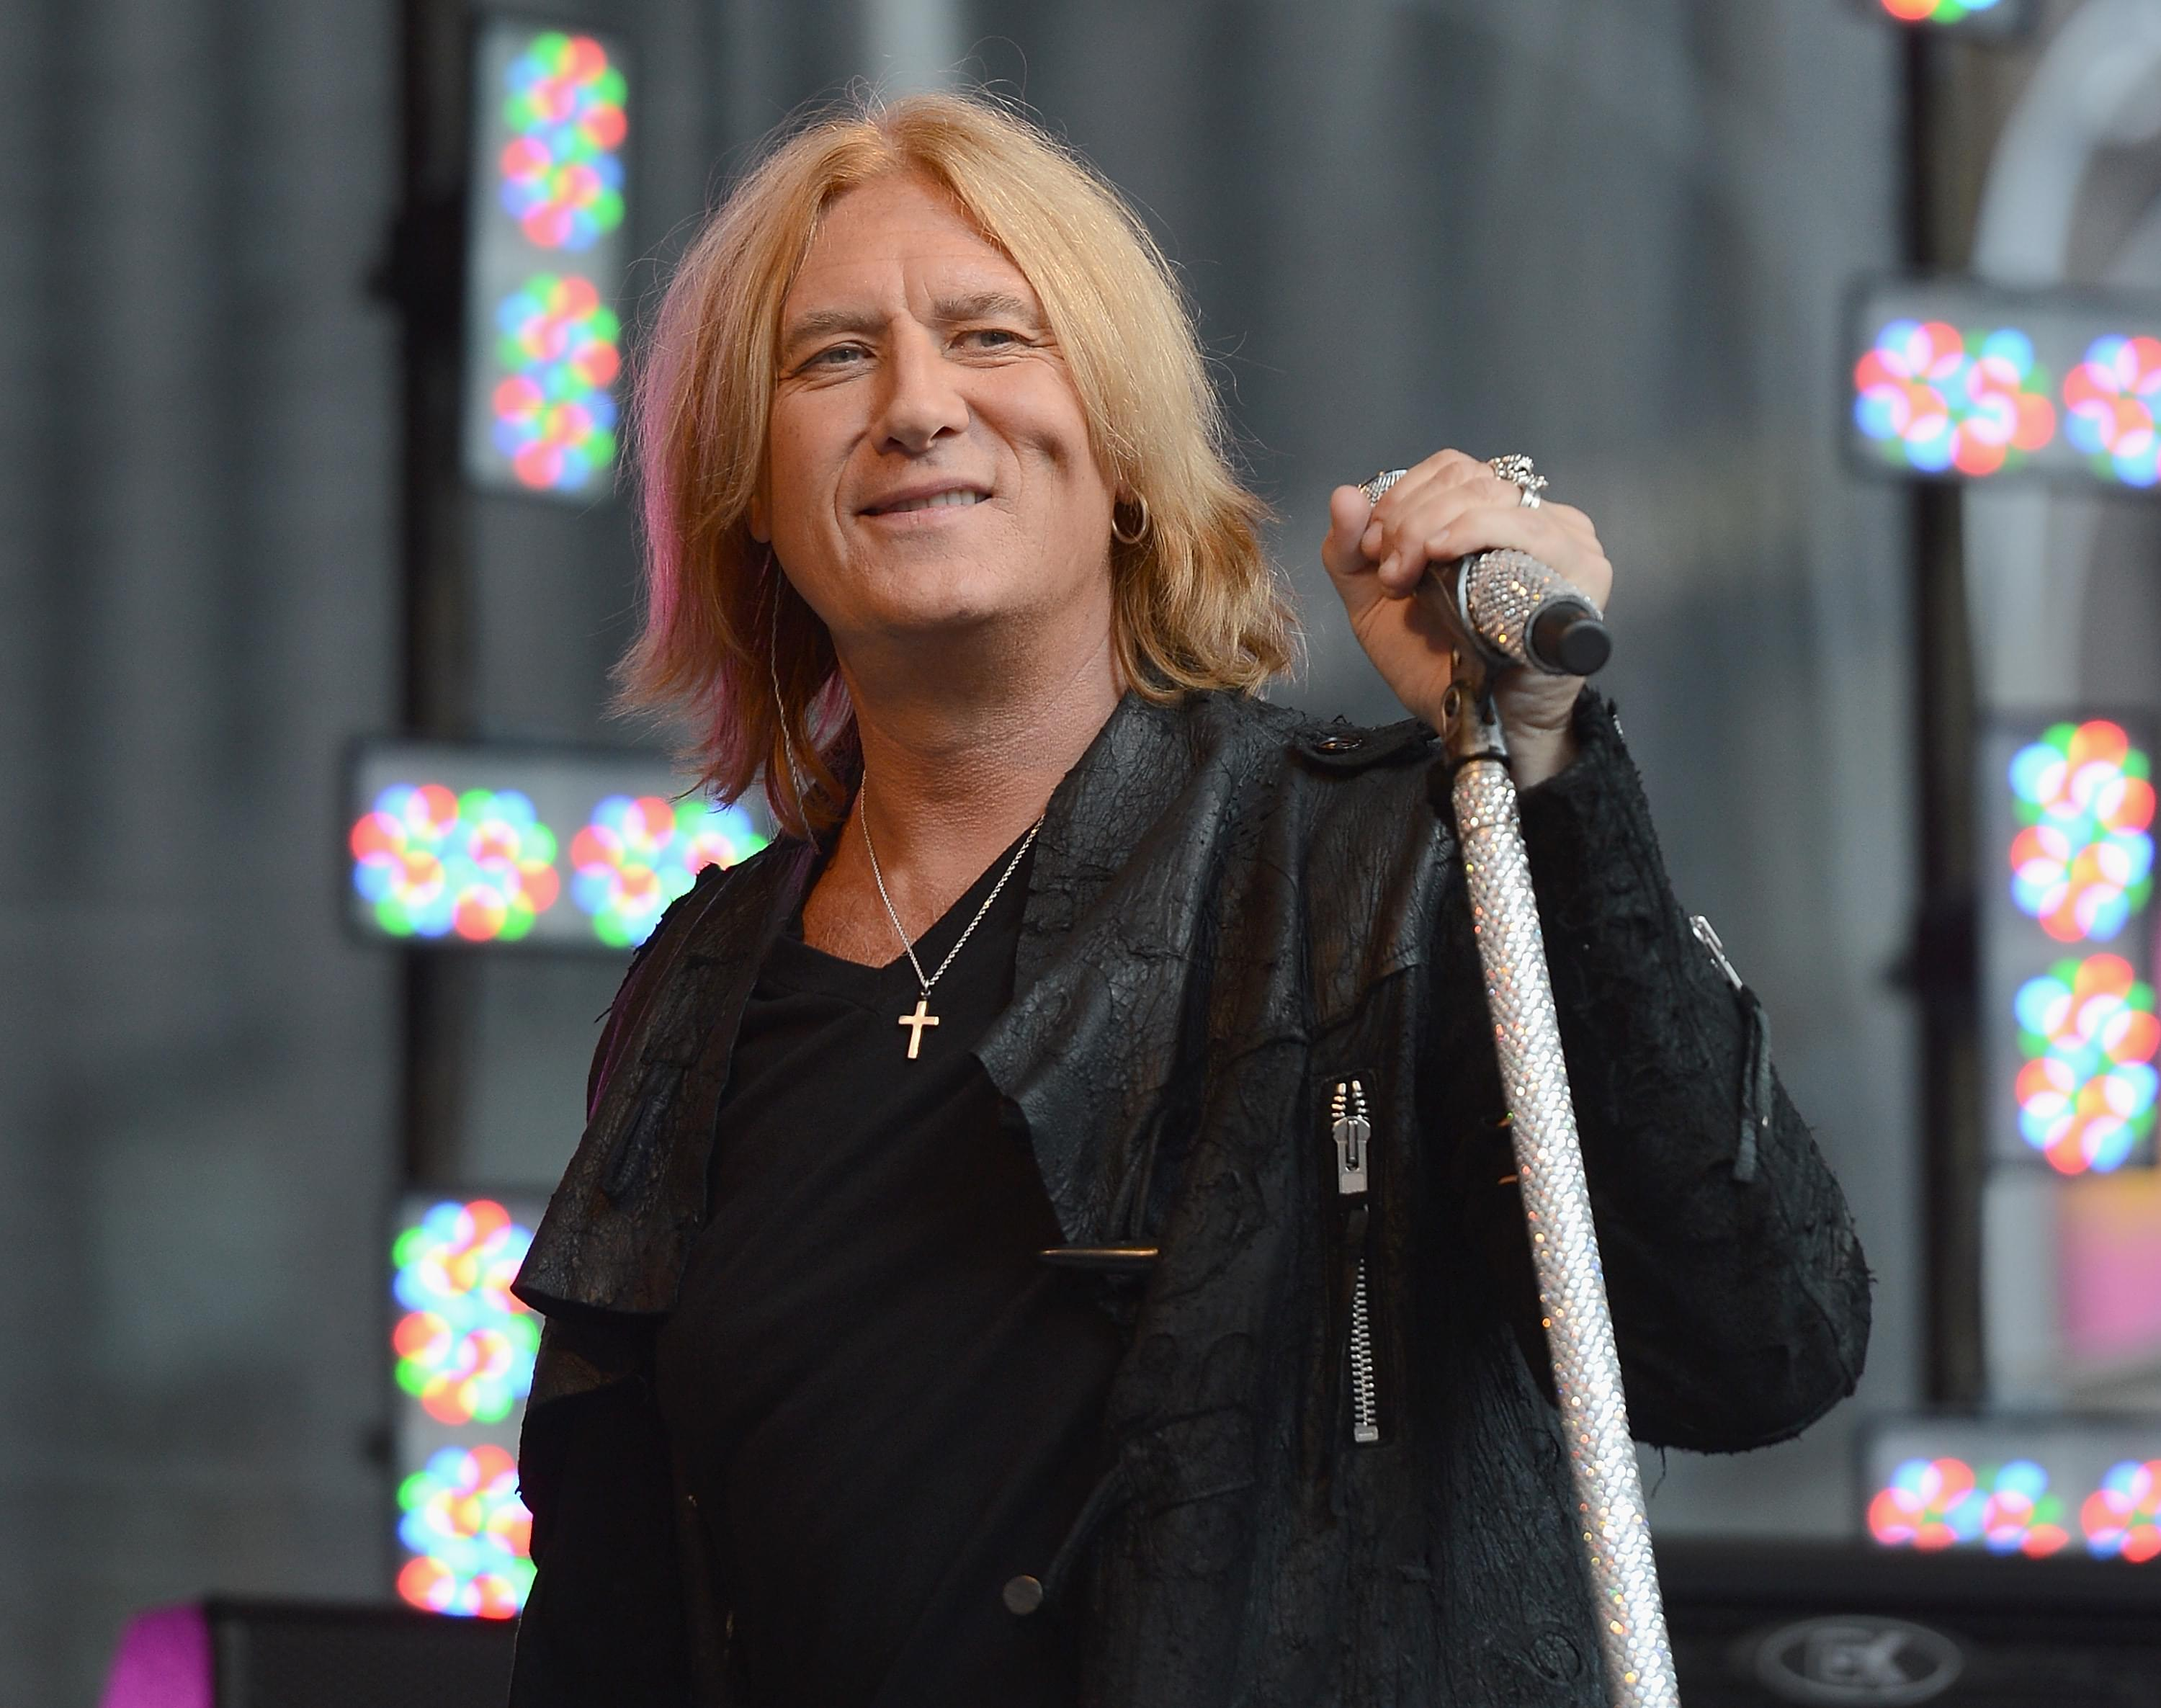 Def Leppard's Joe Elliott announces album release date